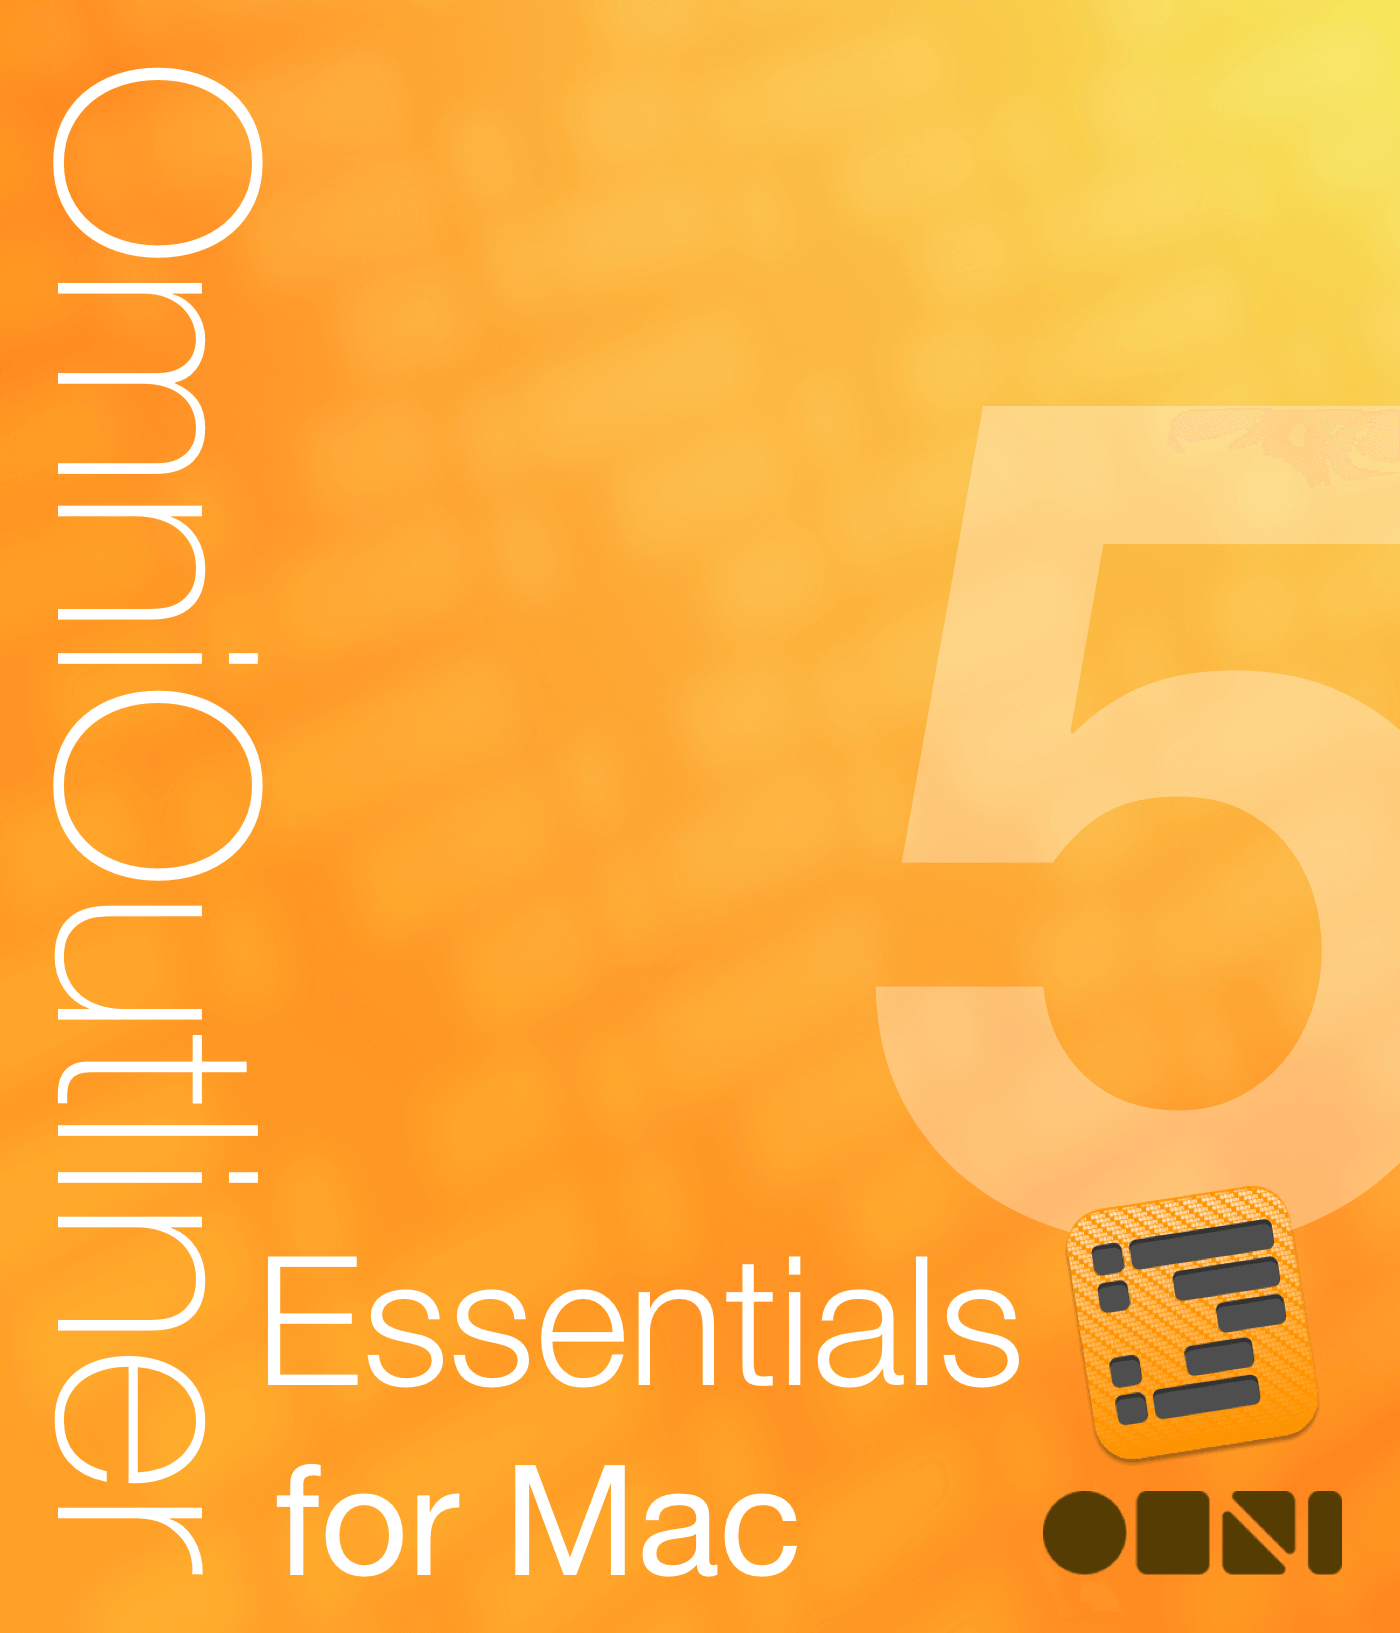 OmniOutliner 5 Essentials Reference Manual for macOS - The